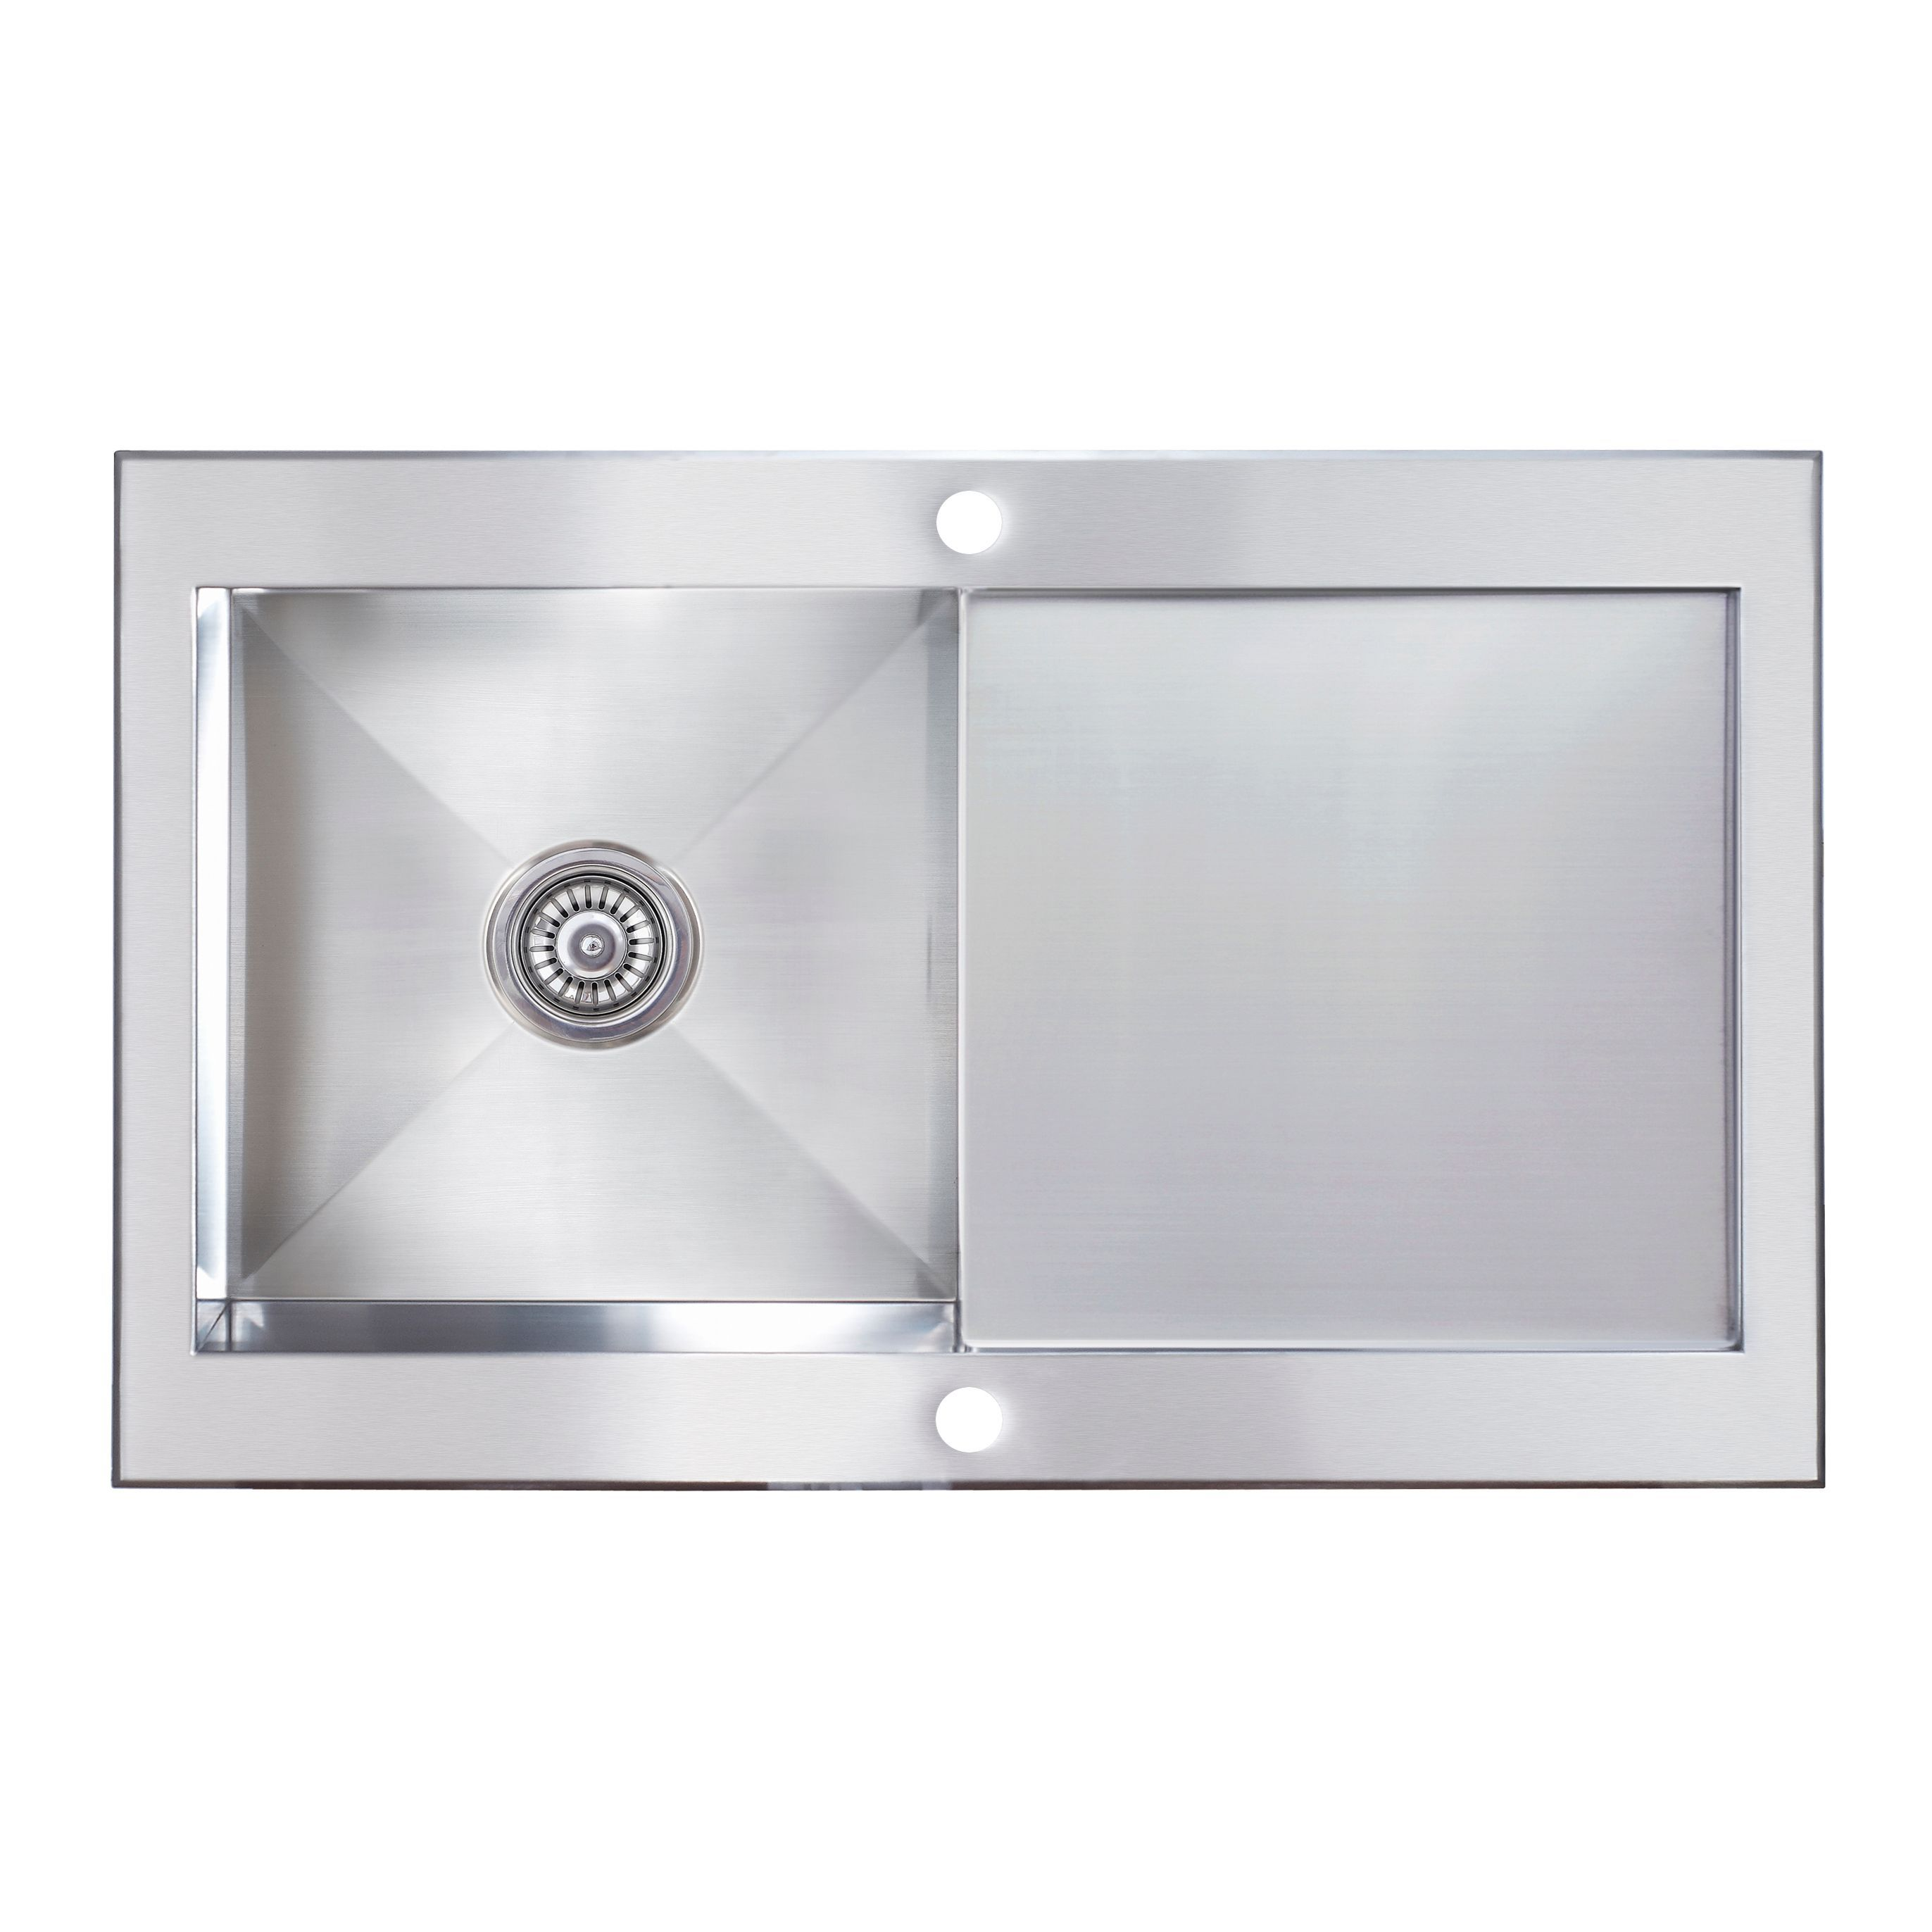 Cooke & Lewis Unik 1 Bowl Stainless Steel Sink with Reversible ...